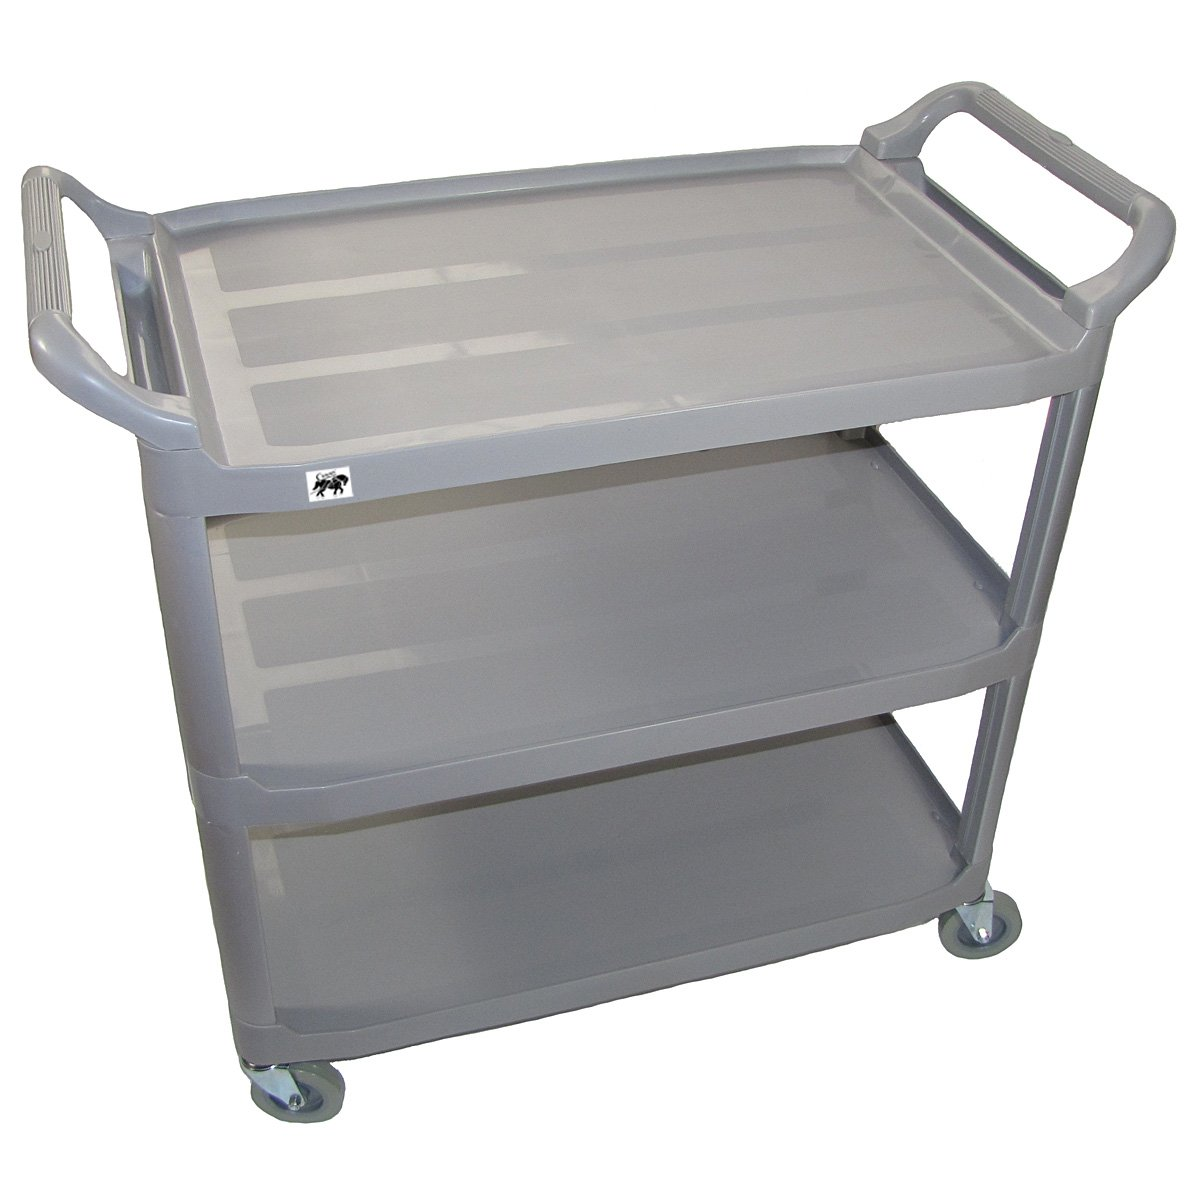 Crayata Serving and Bus Cart, Kitchen Food Service Utility Cart, 3 Tier Heavy Duty Plastic Beverage and Coffee Transport Cart for Restaurants, Gray